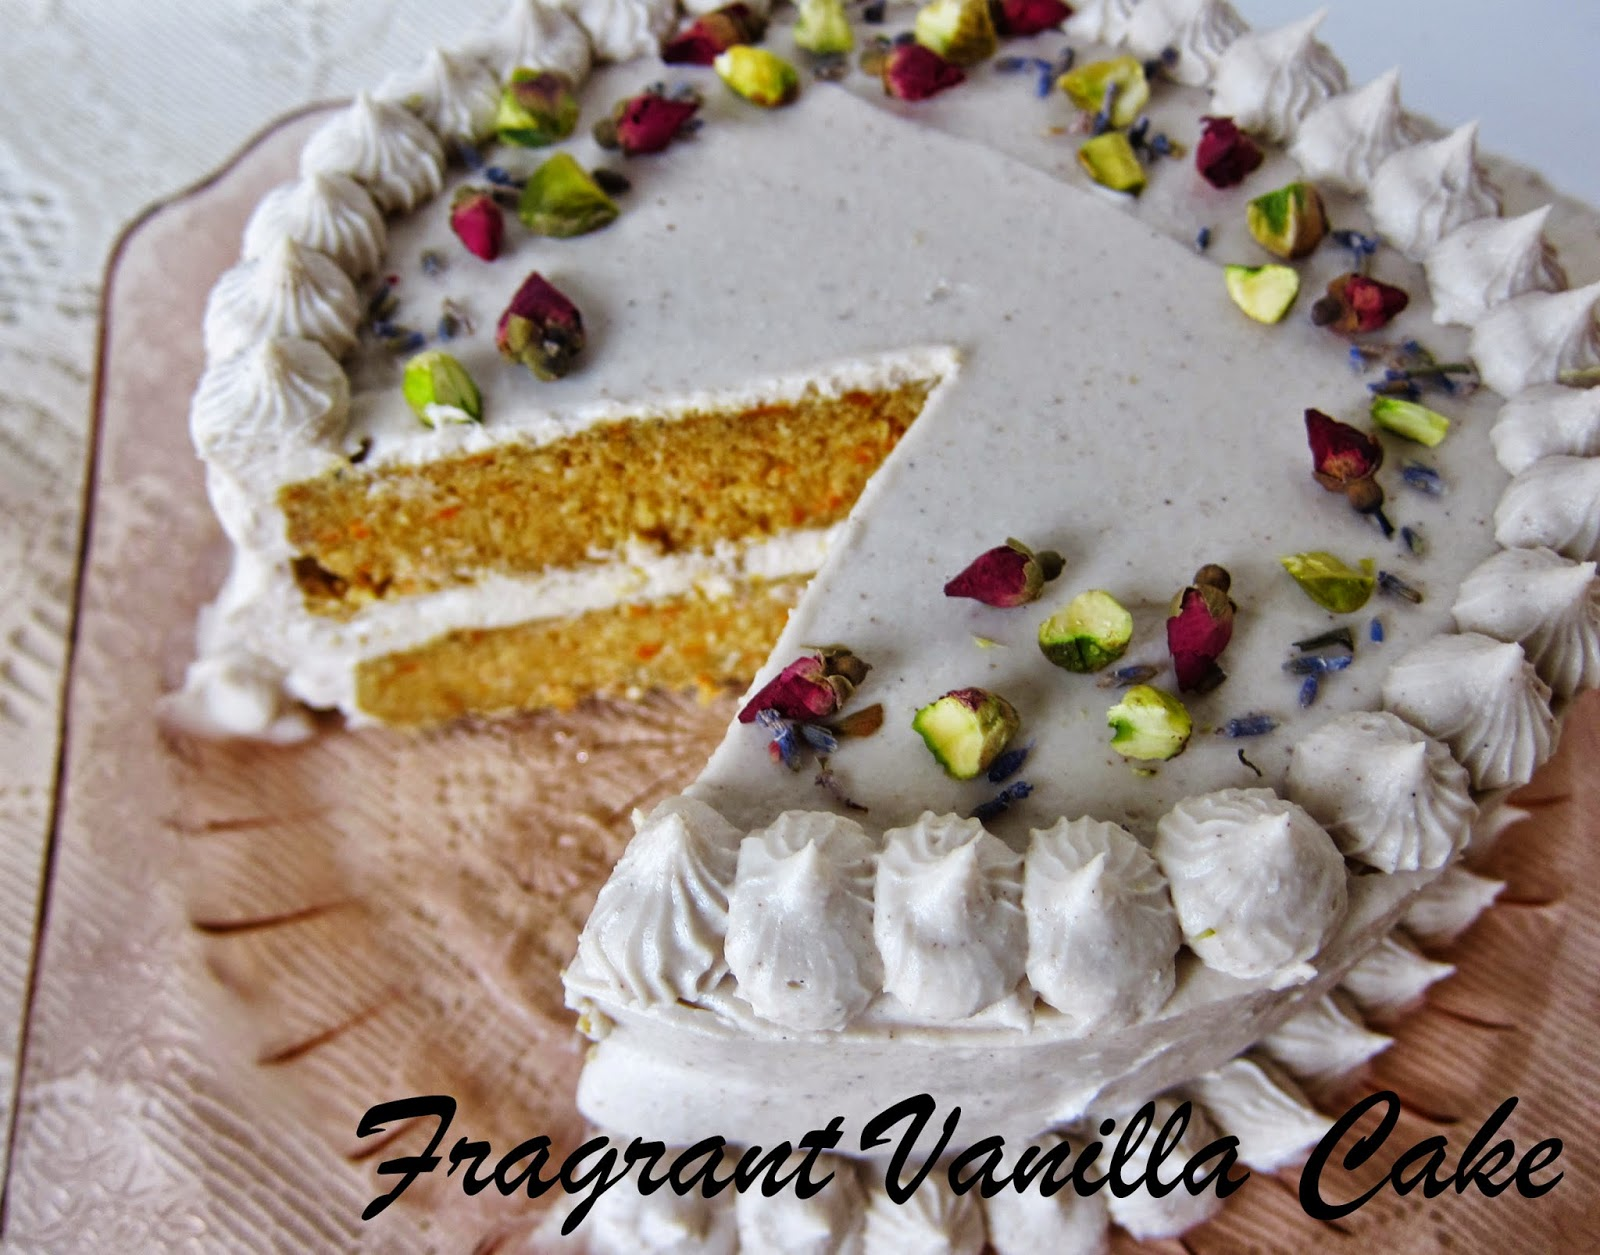 ... Cardamom Scented Carrot Cake with Rosewater Vanilla Coconut Frosting